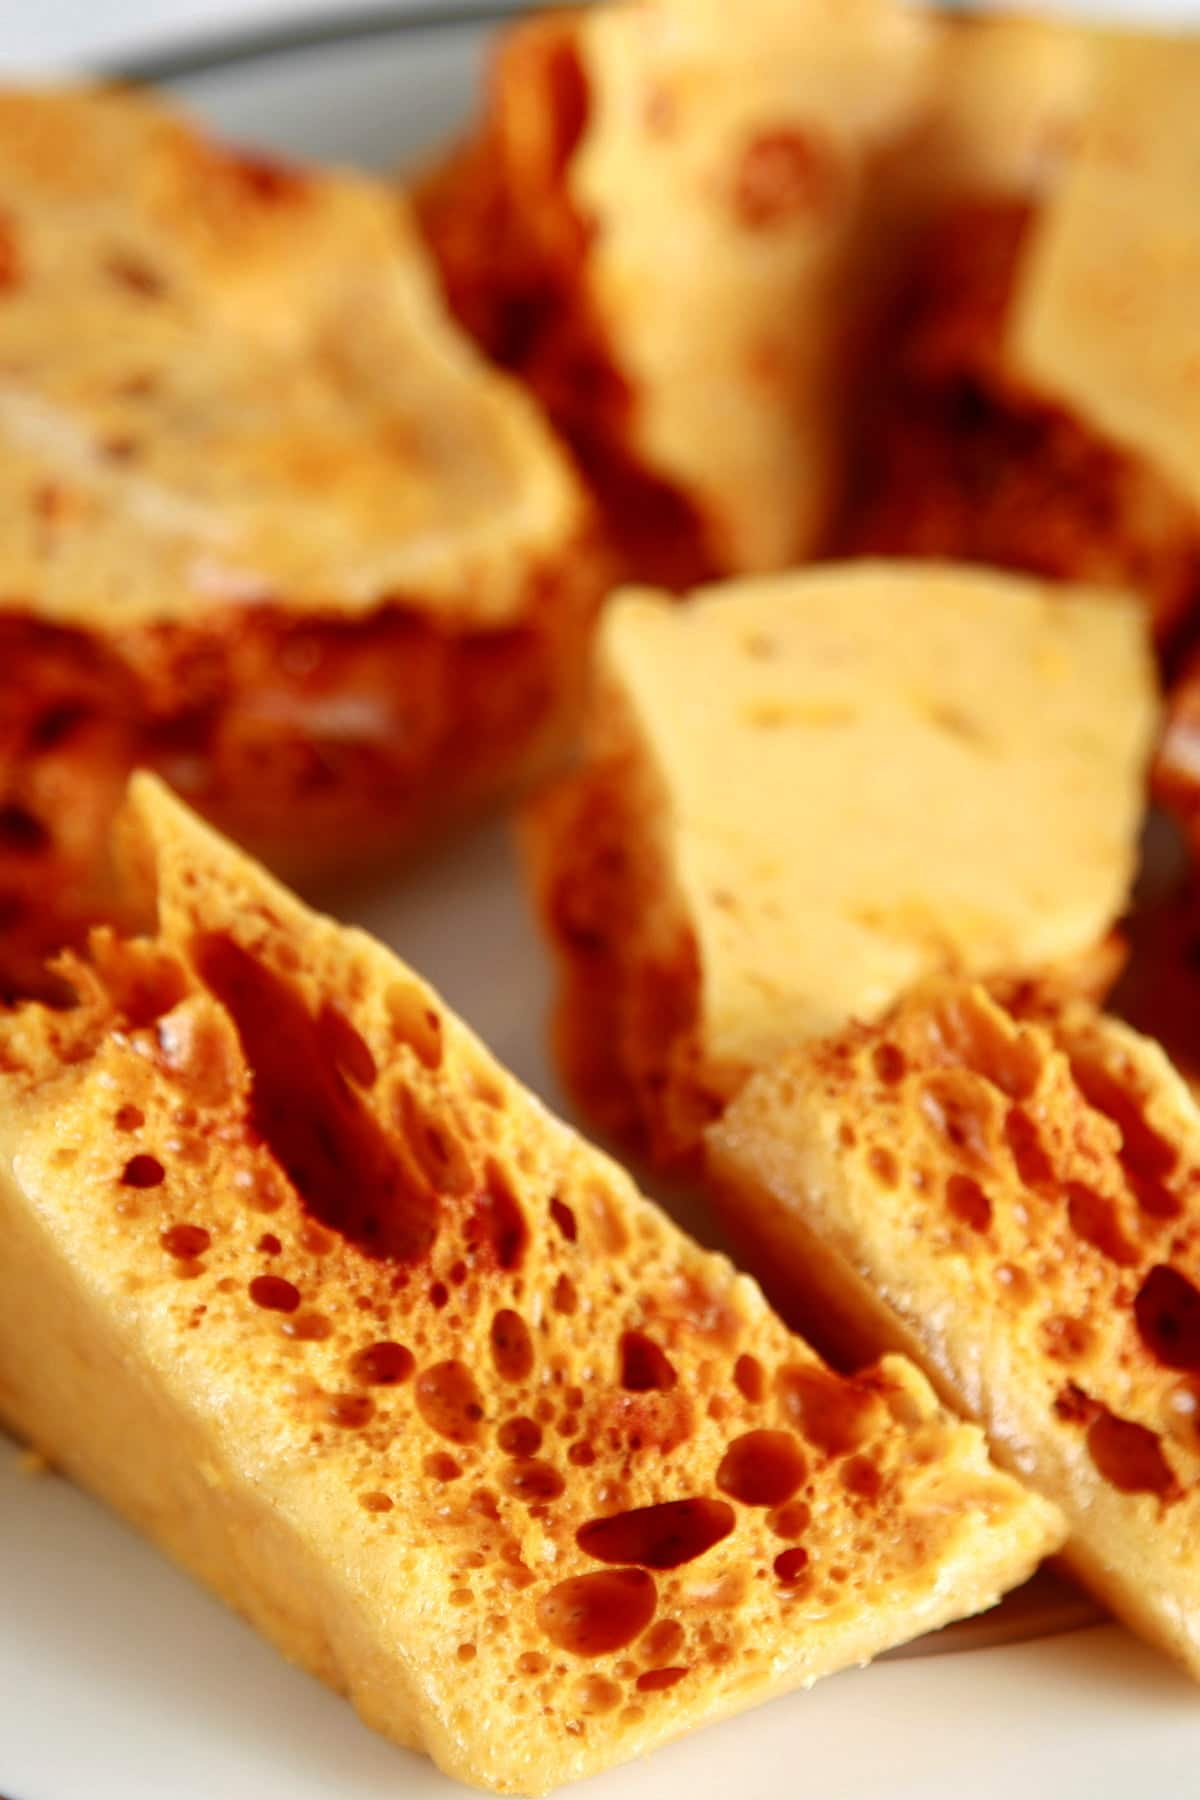 Close up view of a plate of golden honeycomb candy chunks.